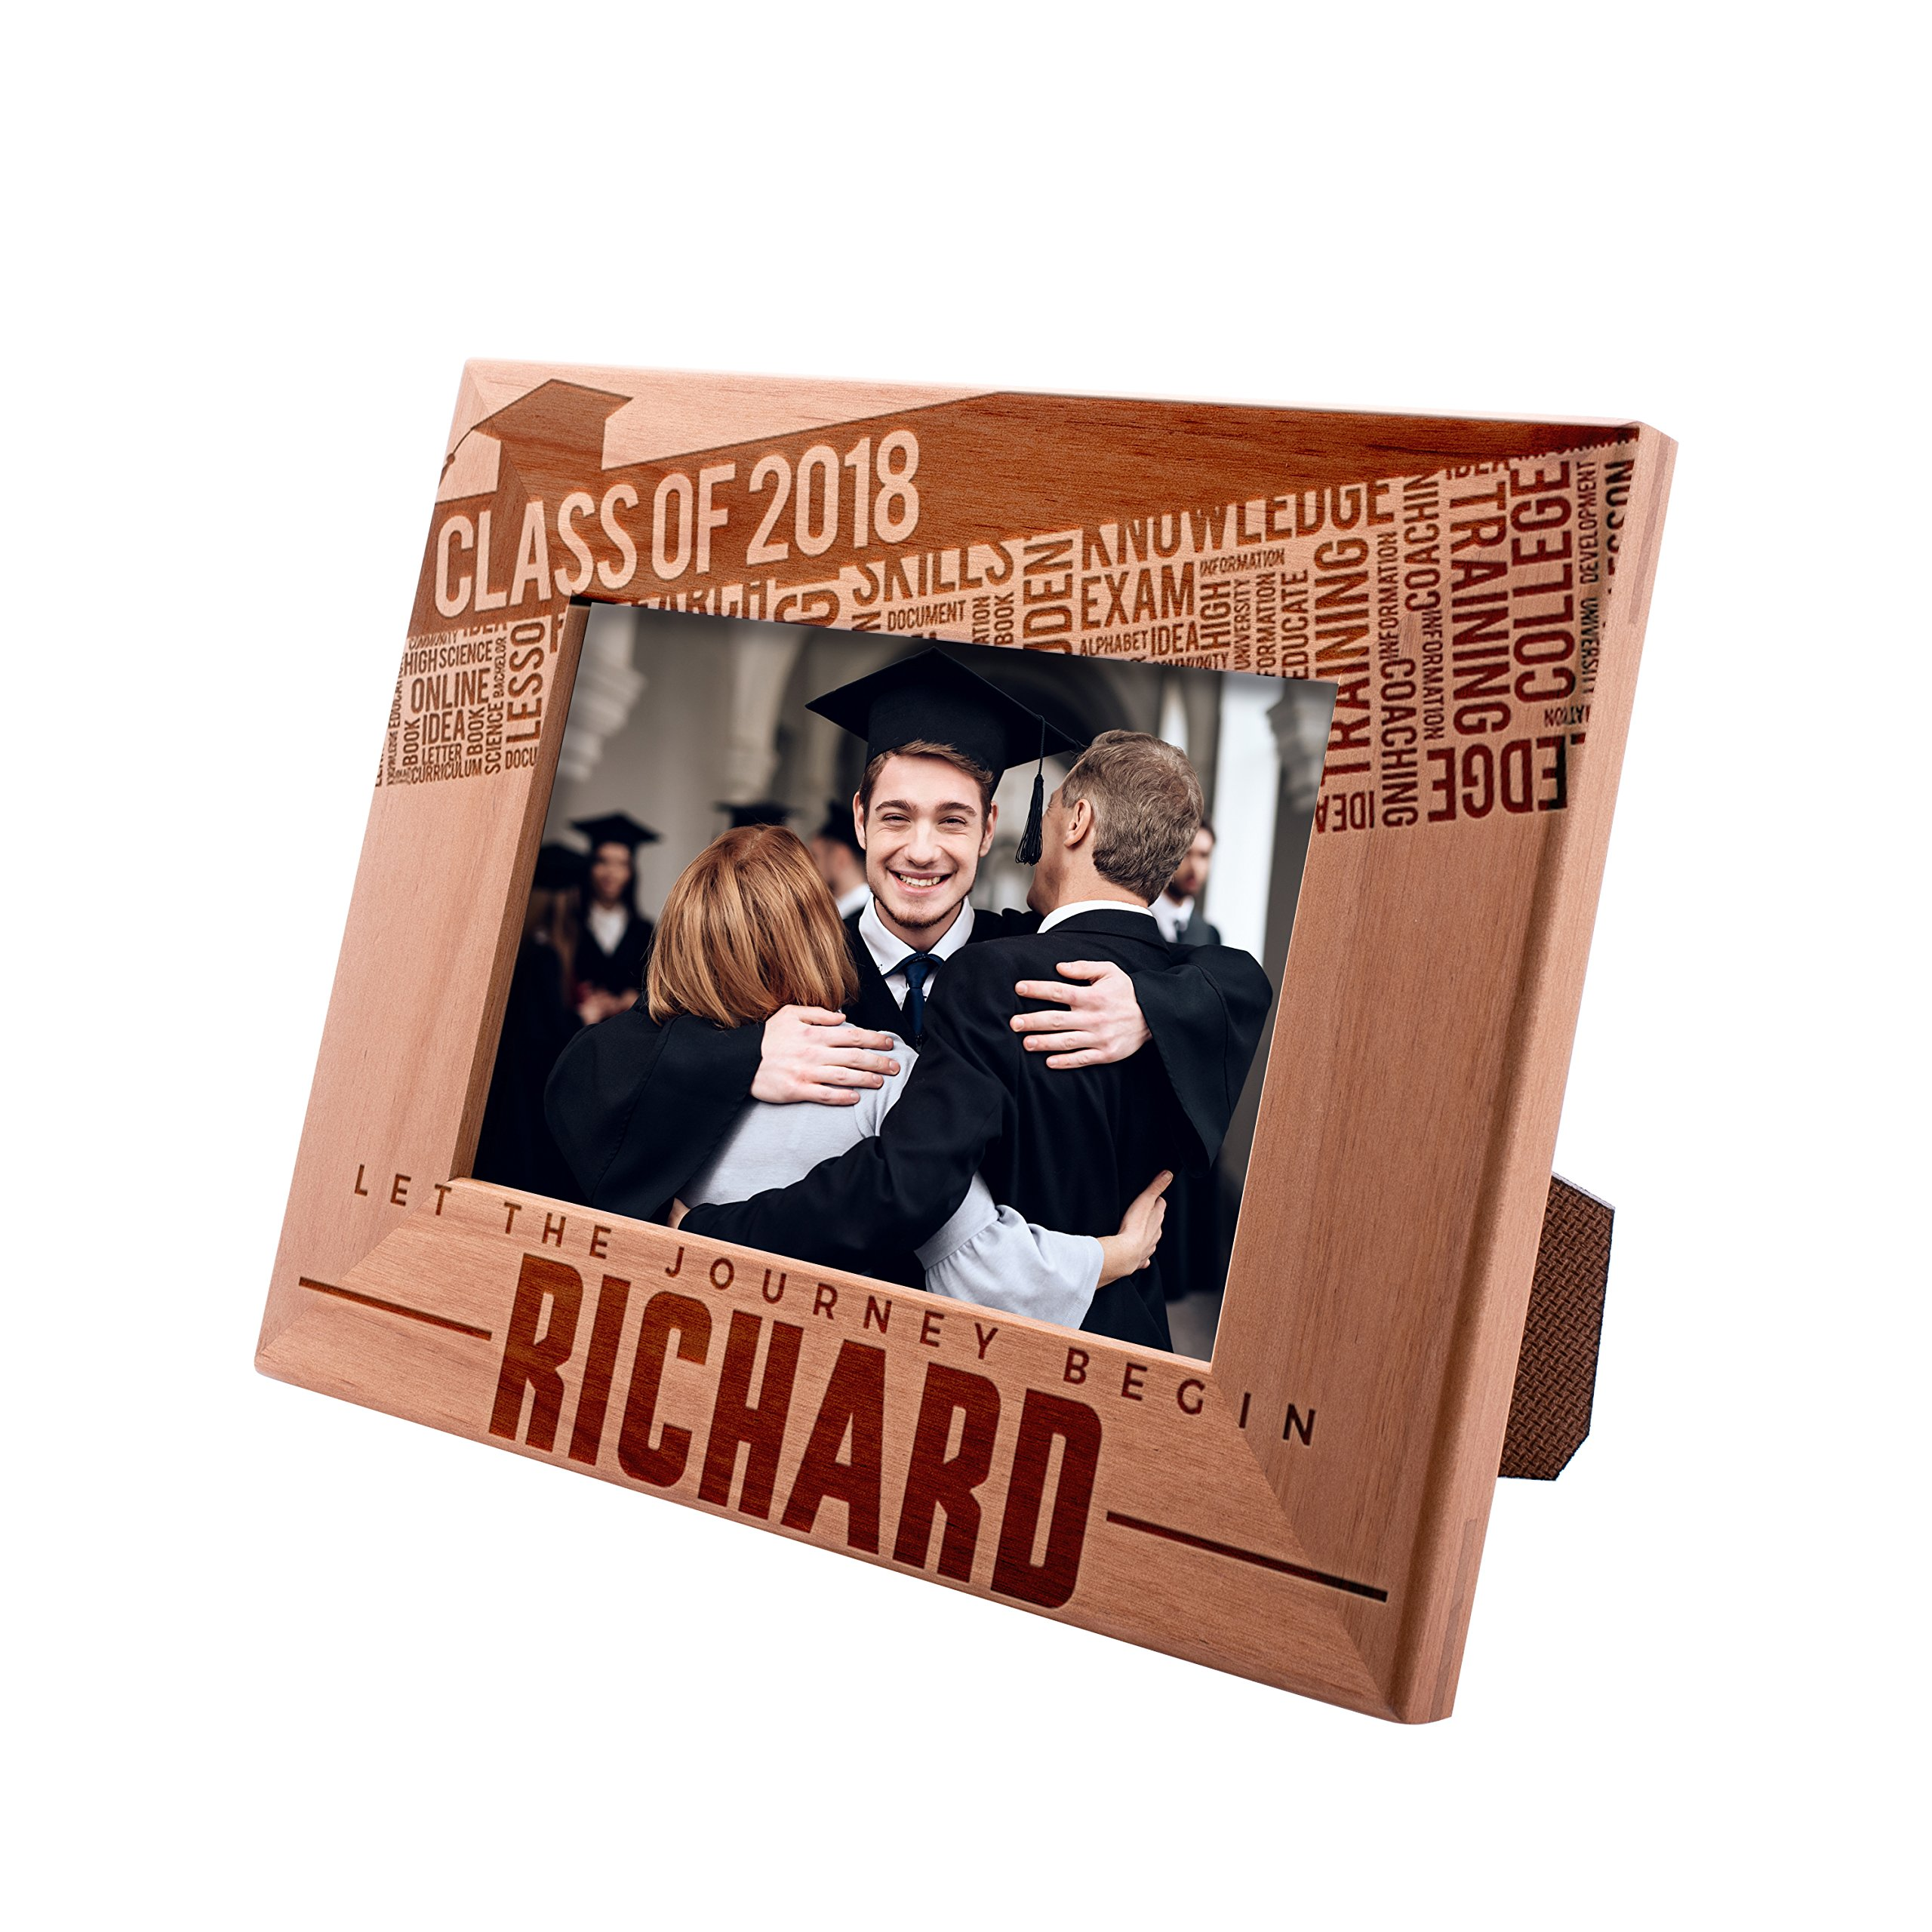 Personalized Engraved Graduation Picture Frame 4x6 - Let The Journey Begin - Class of 2019 - Gift For High School or College Graduate Gift